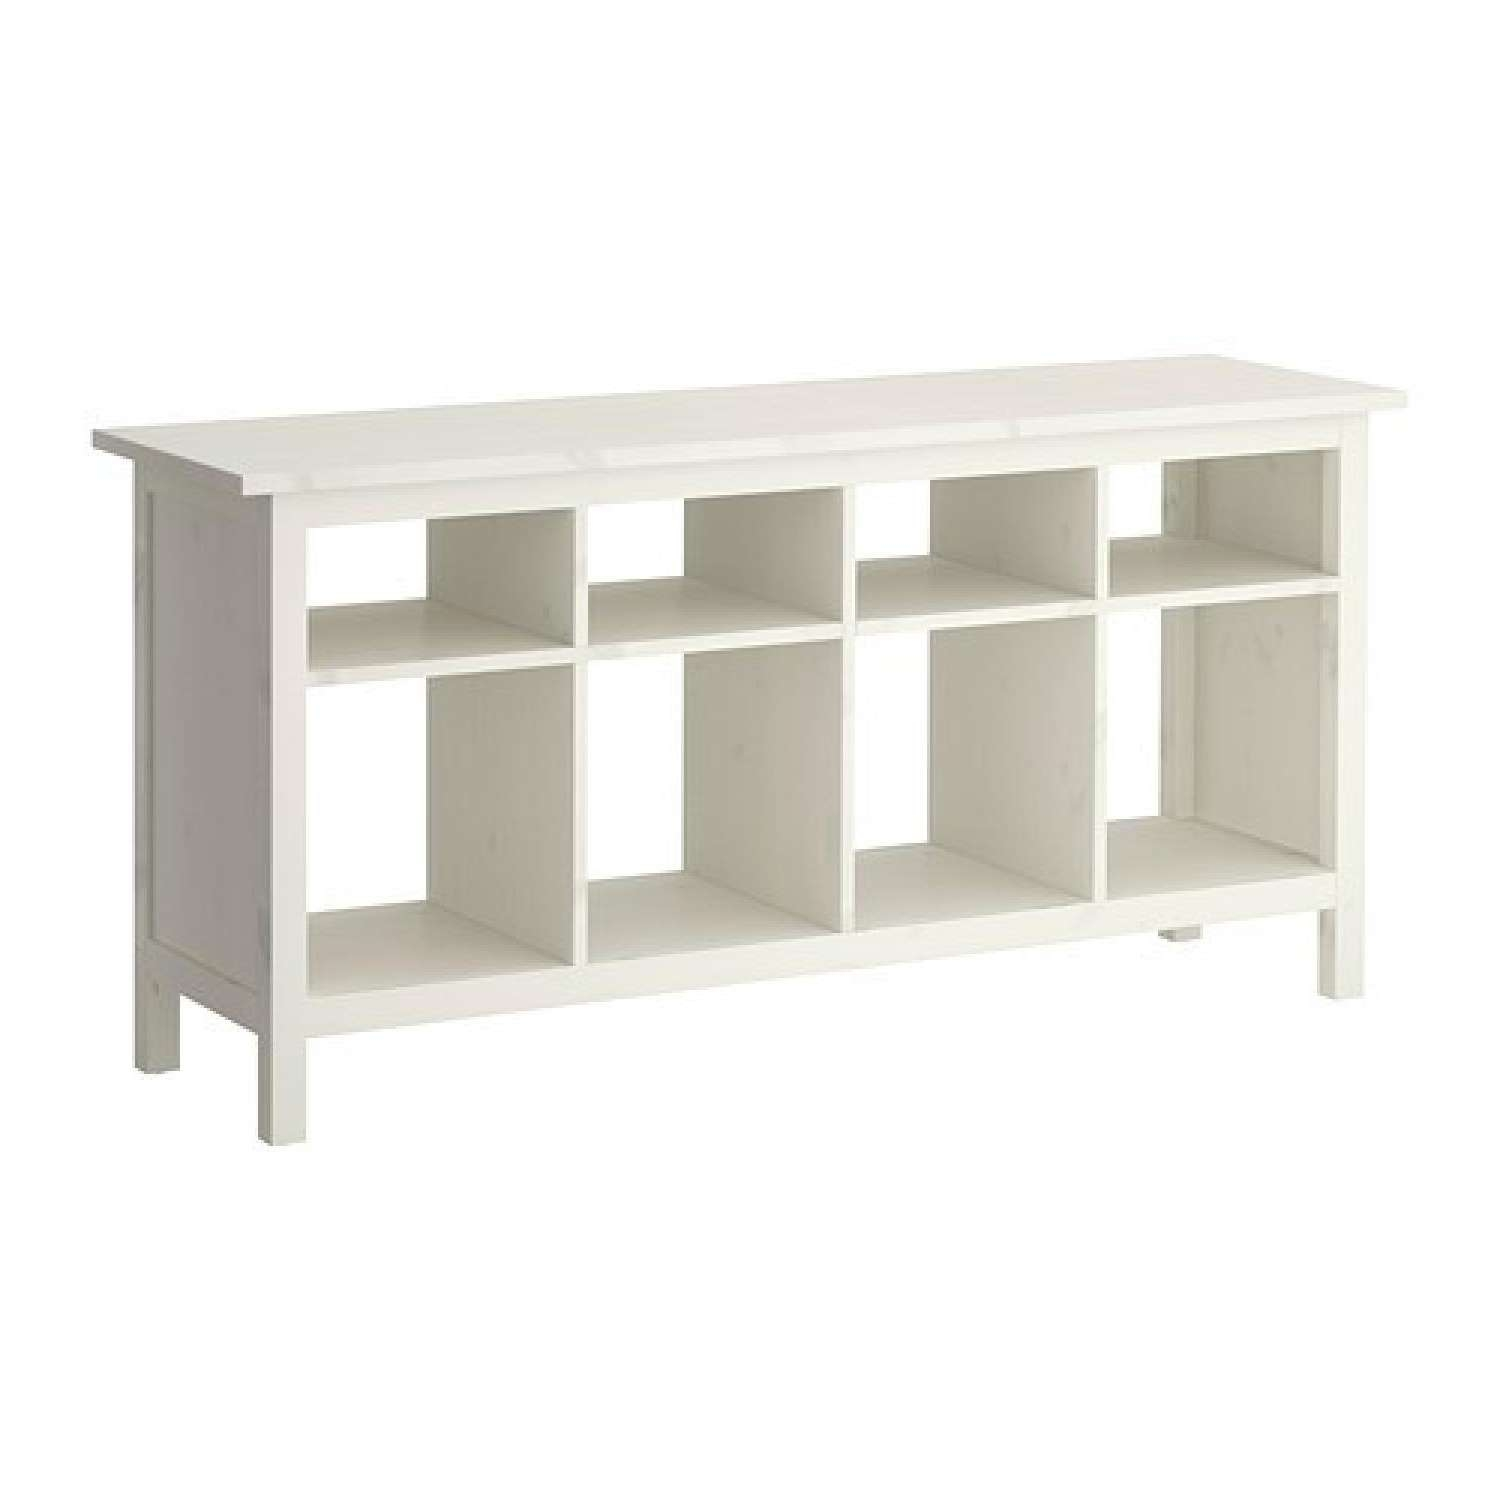 Ikea Hemnes Console Table – Aptdeco For Ikea Hemnes Sideboards (View 15 of 20)